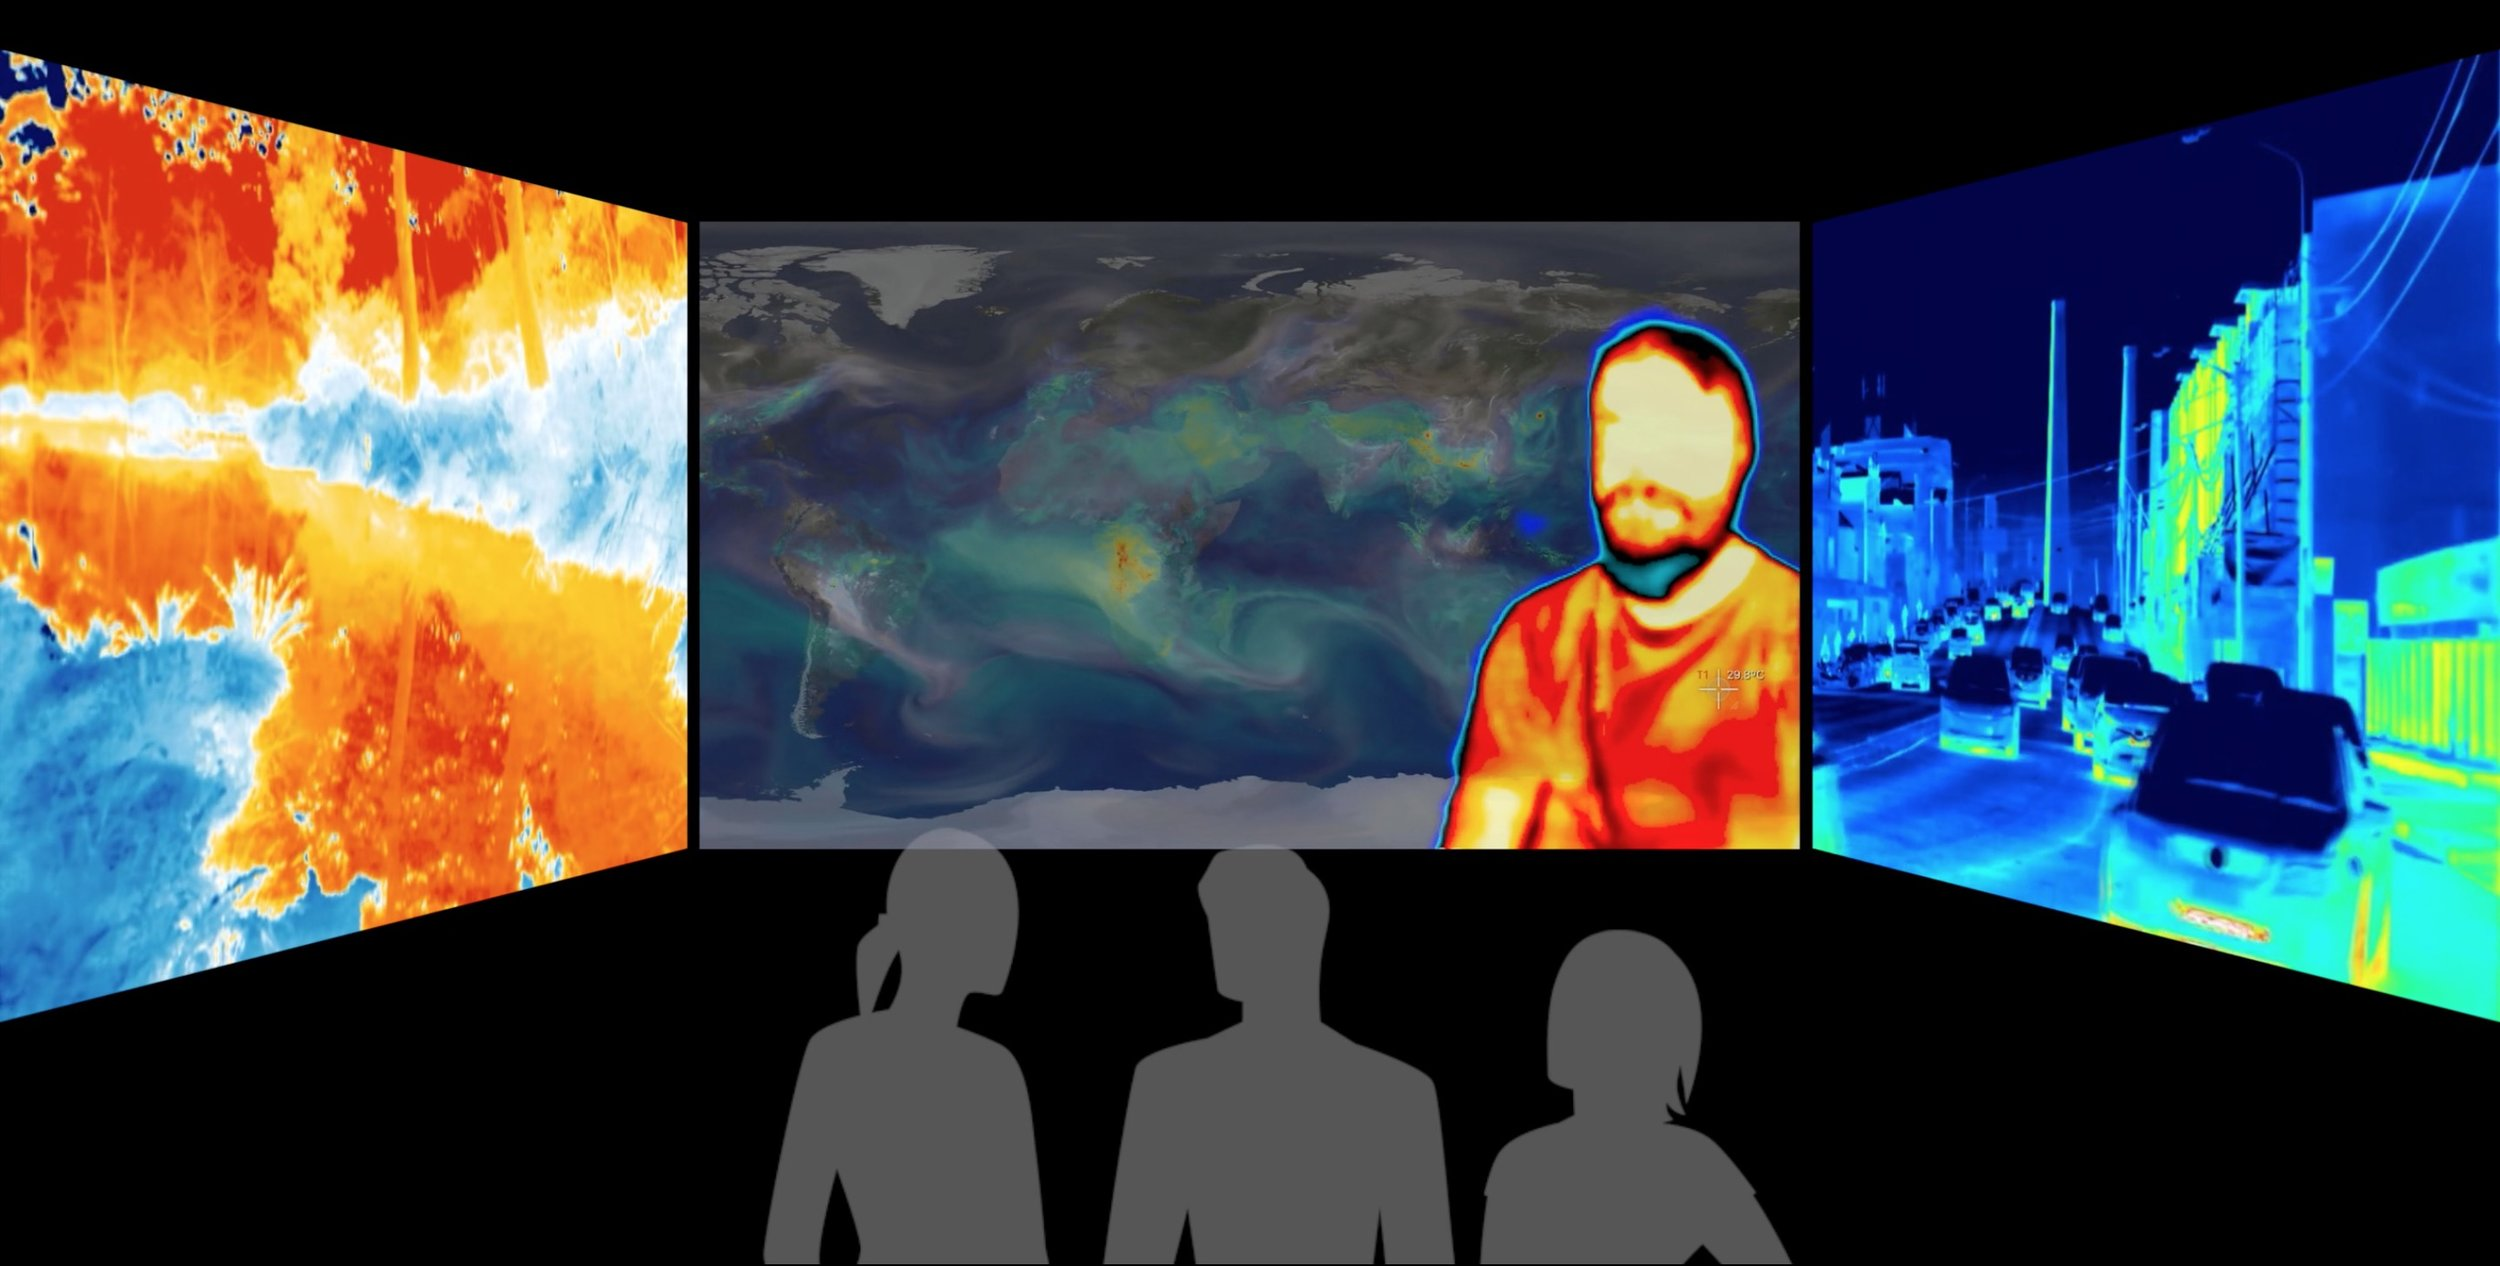 feeling the heat - thermographic video triptych with climate scientists